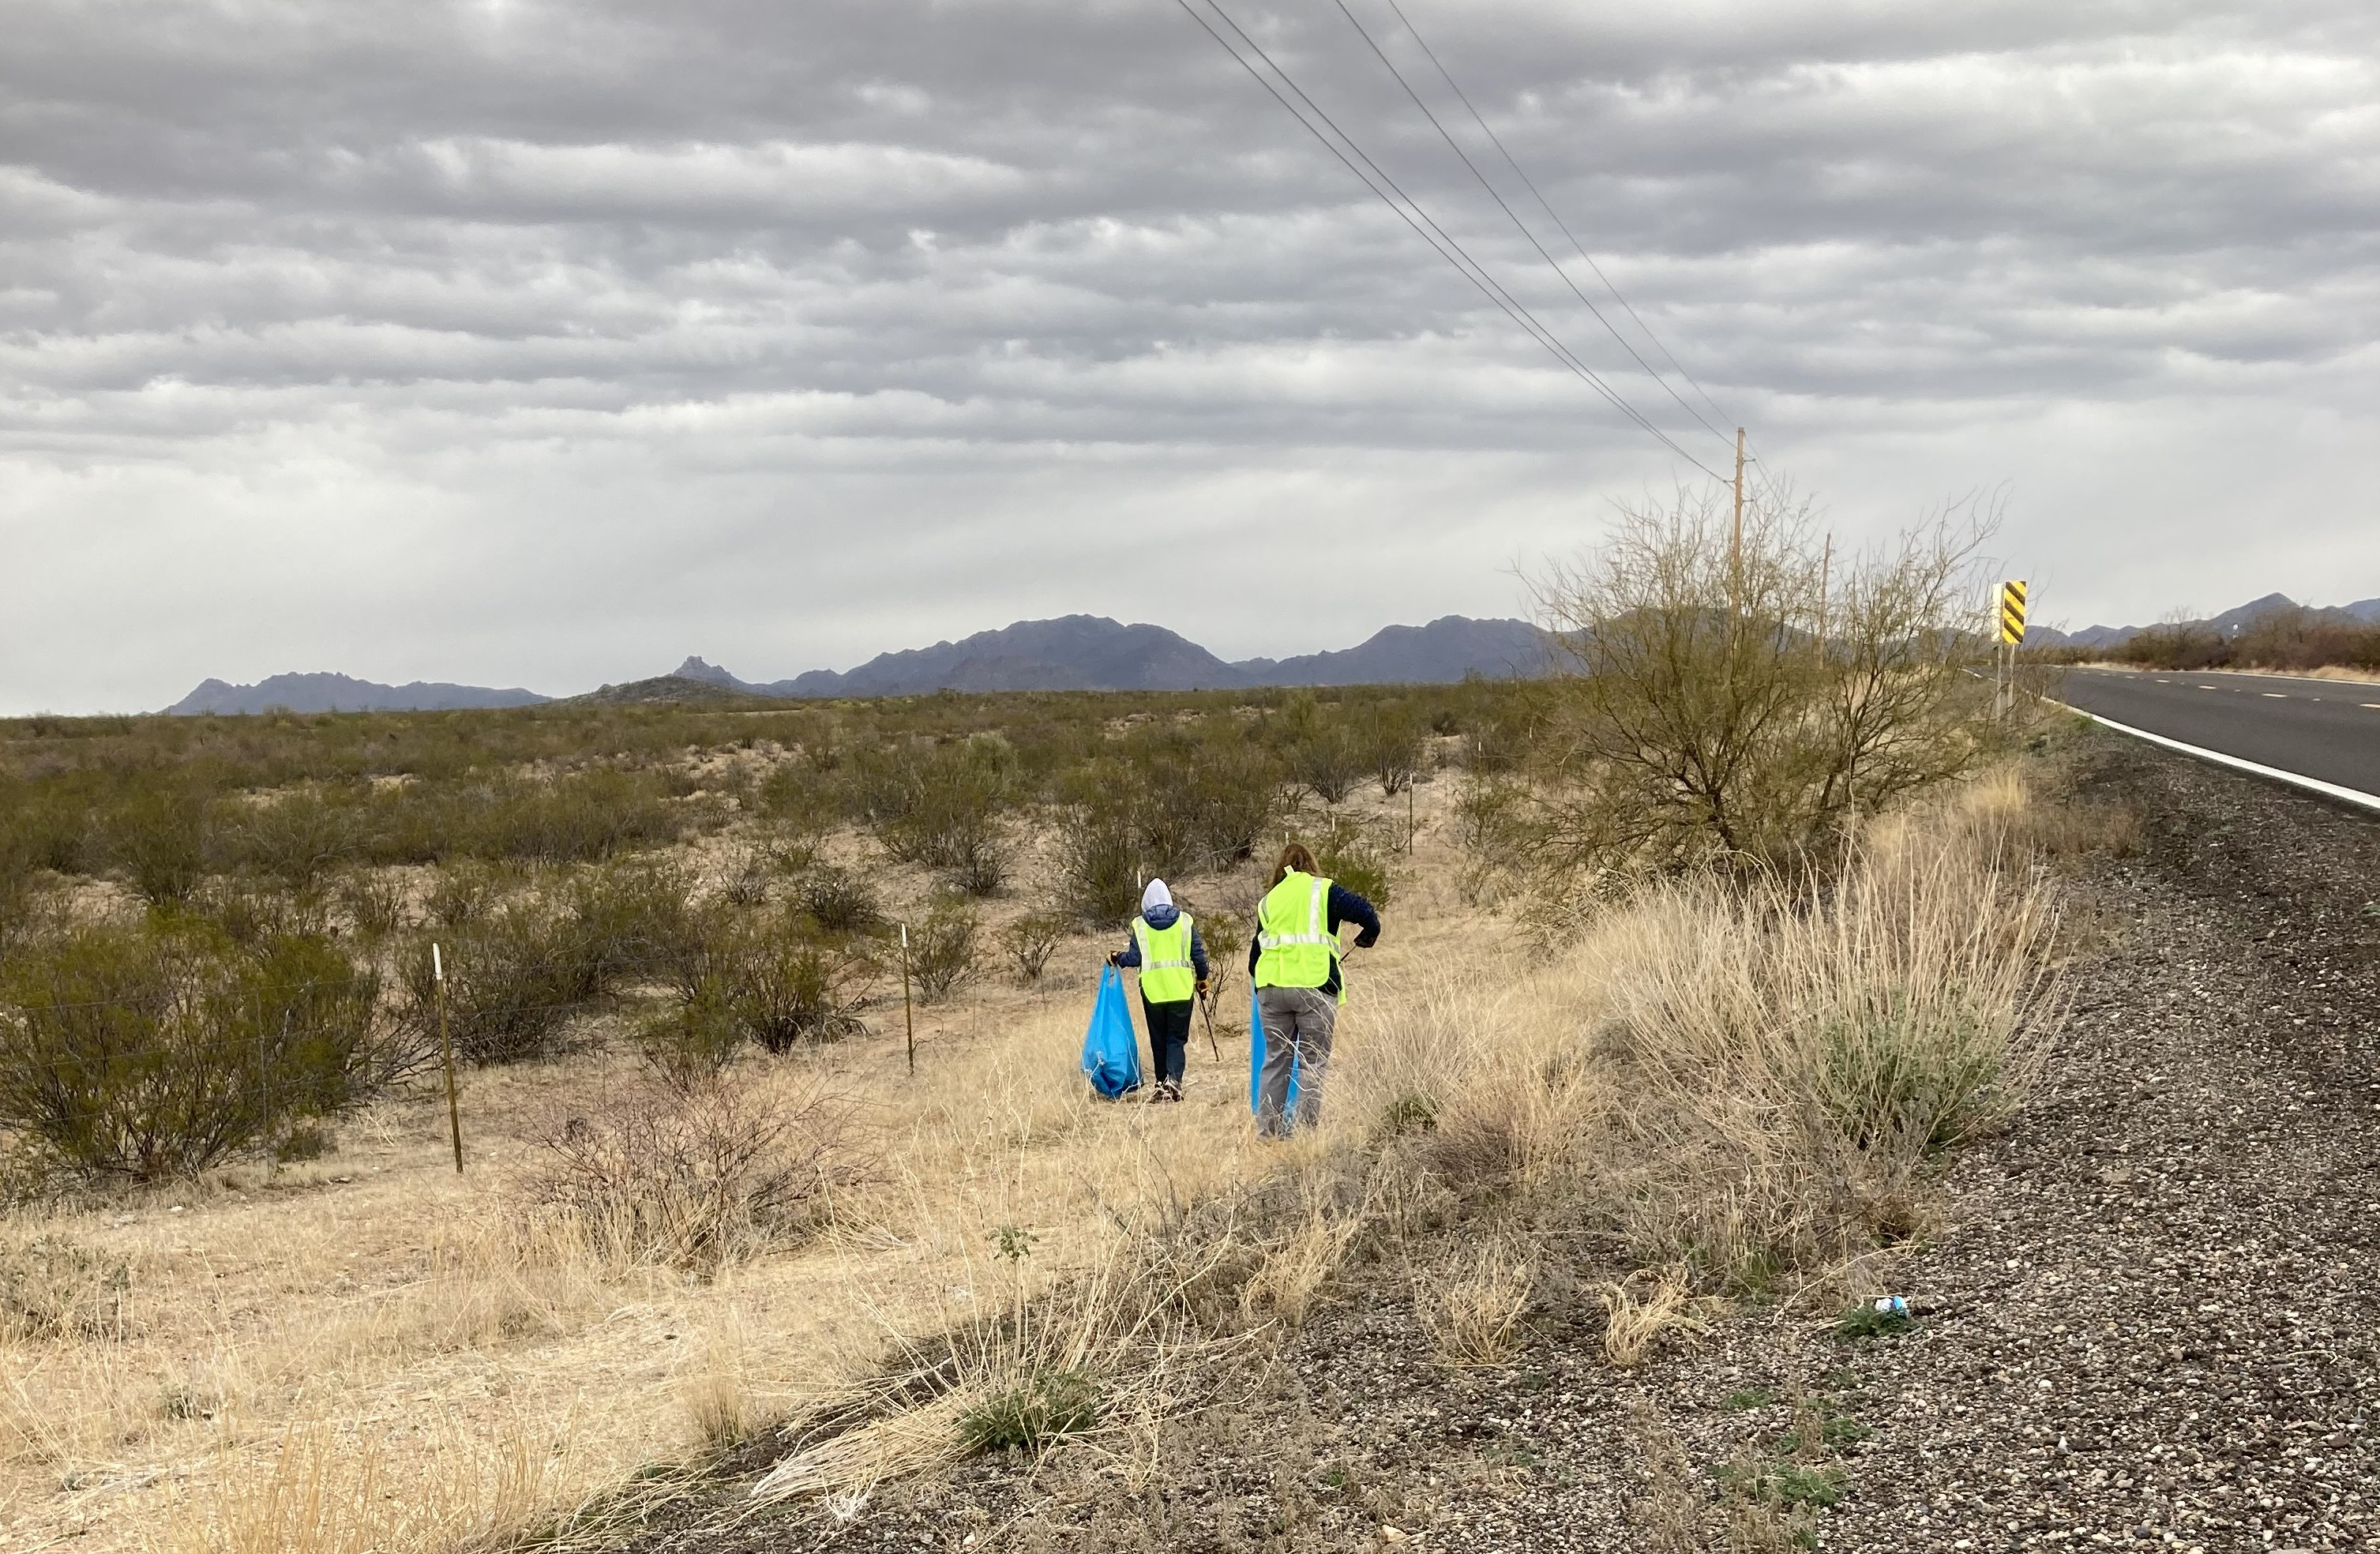 Adopt a Highway SR 89 litter cleanup Escapers RVers Club